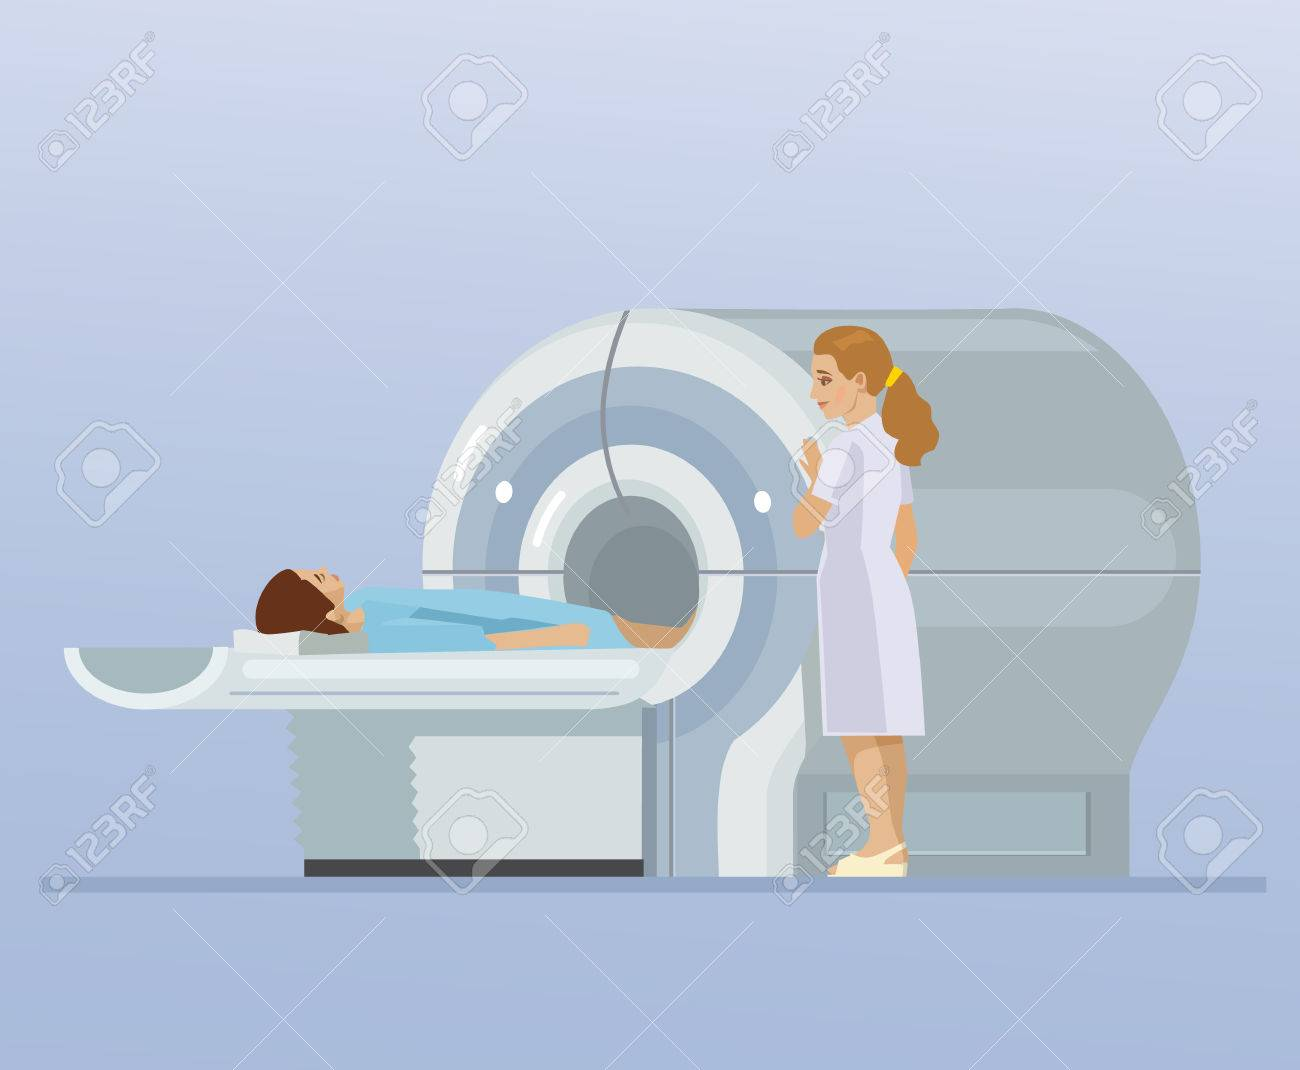 CT scan and patient. Vector flat cartoon illustration - 71547011